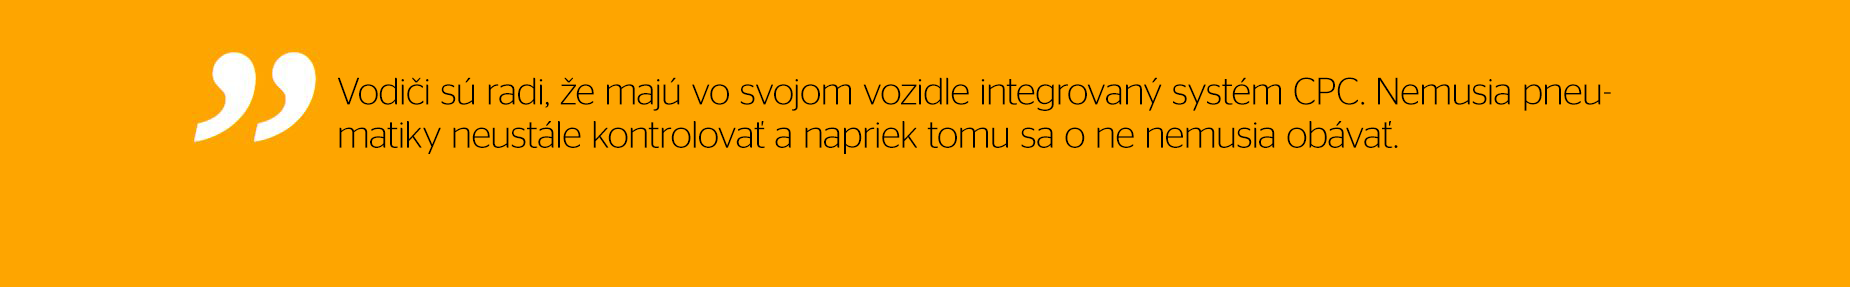 serbia-bz-transport-quote